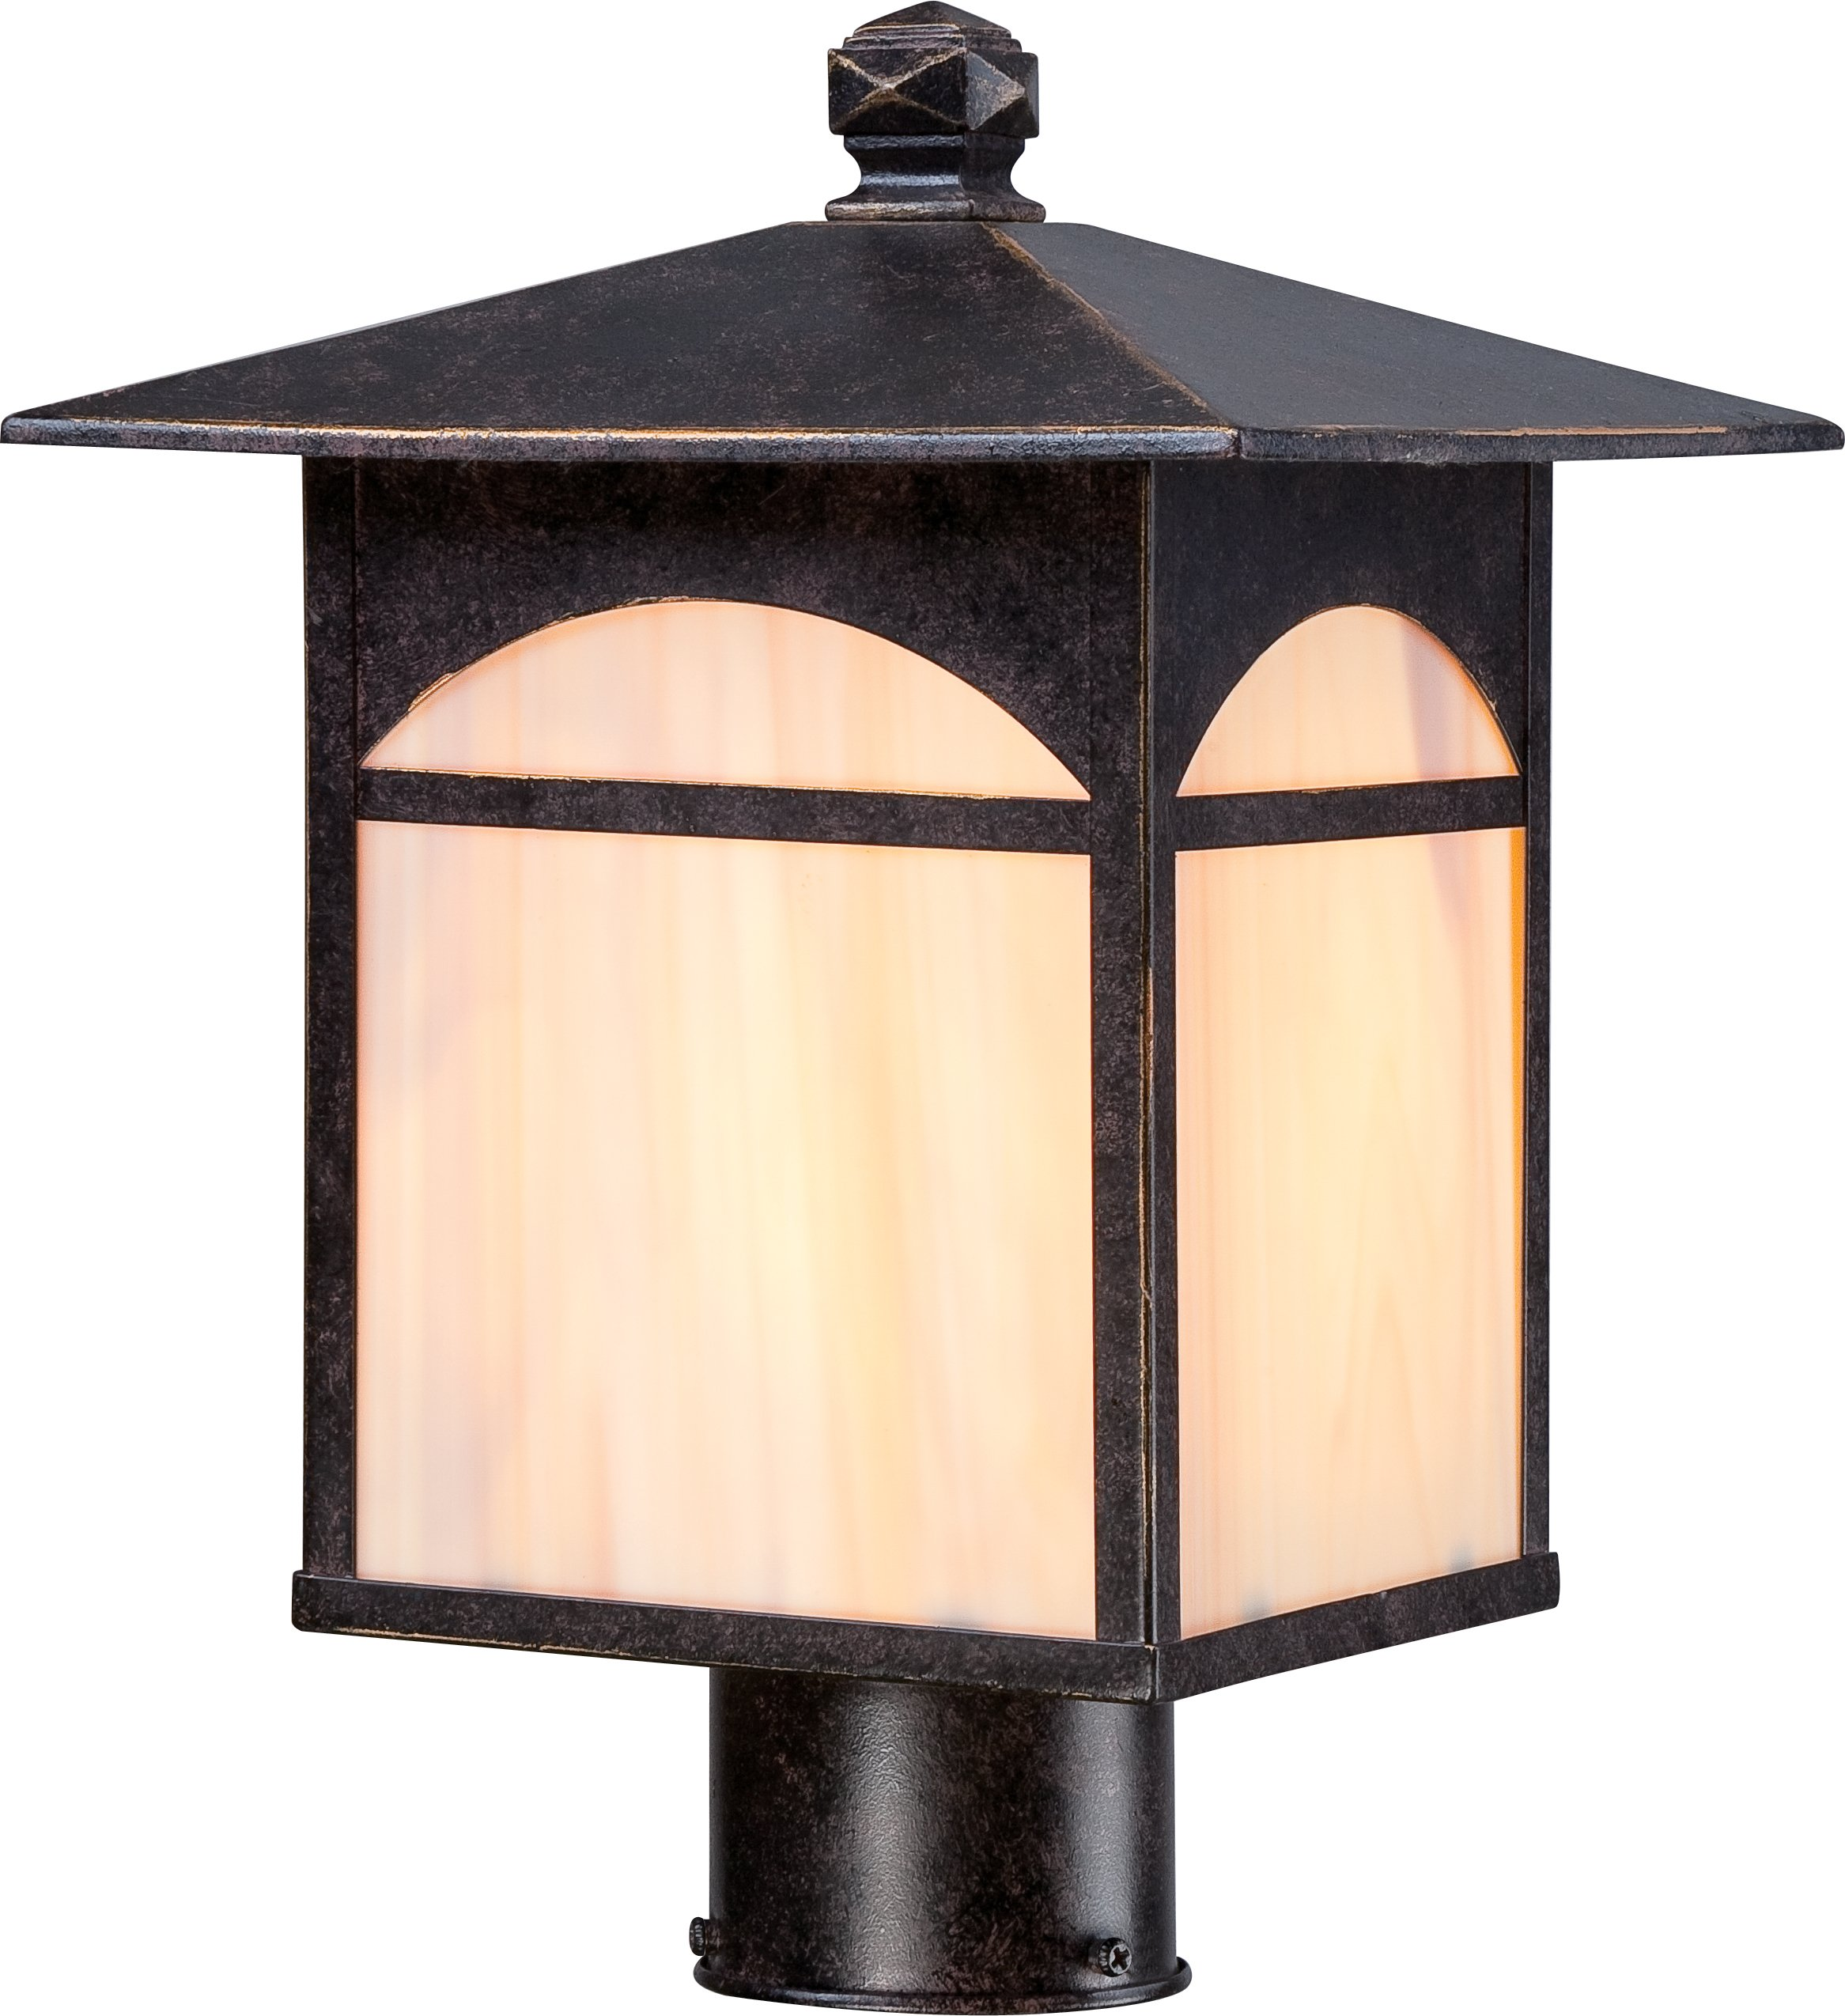 Nuvo Lighting 60/5655 Canyon Post One Light Lantern 100-watt Outdoor Porch and Patio Lighting with Honey Stained Glass, Umber Bronze